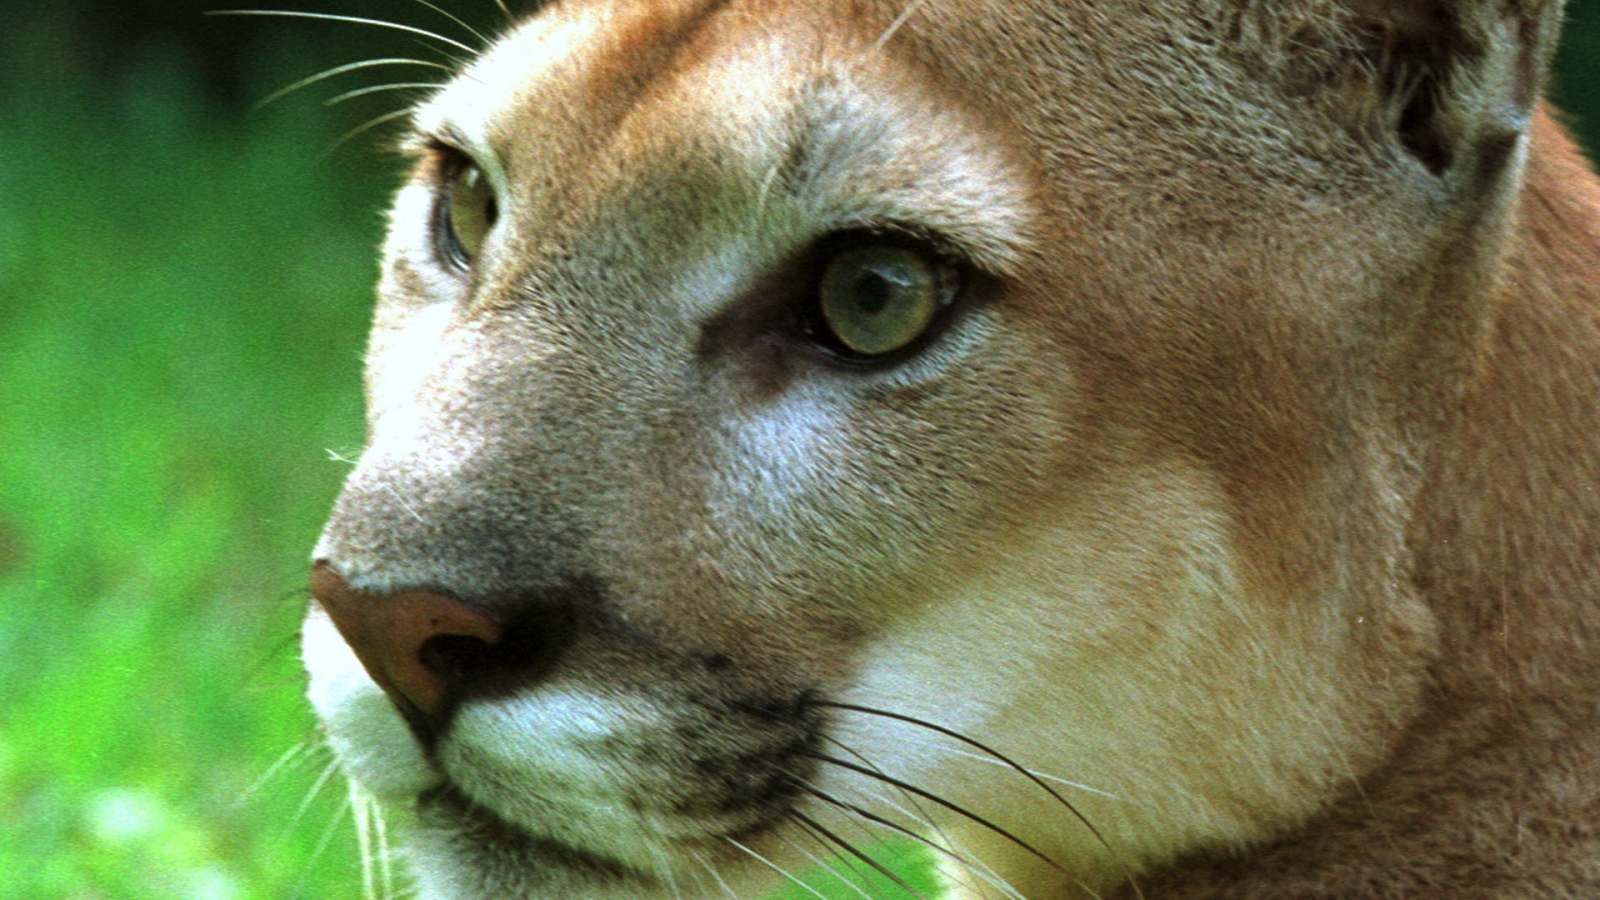 pumas-aka-mountain-lions-are-more-afraid-of-humans-than-we-thought